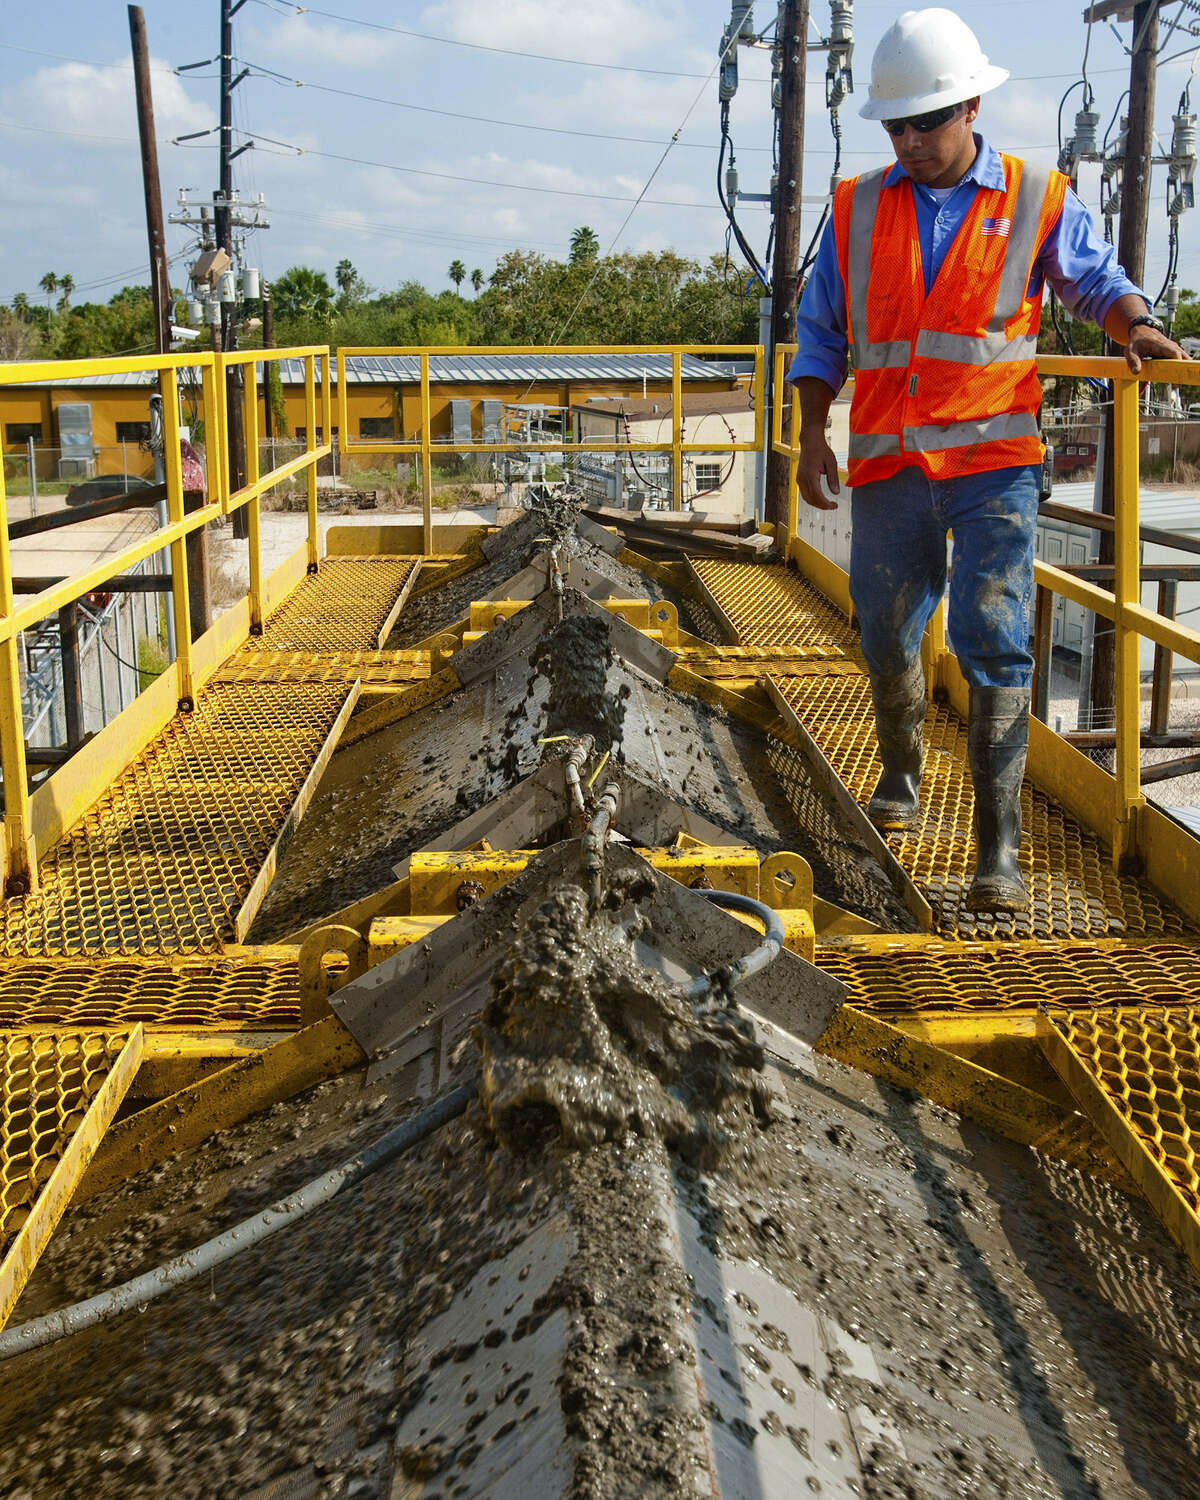 Brownsville-Harlingen Average hourly wage: $16.41 Average cost-of-living adjusted wage: $19.66Change: +3.25Photo: Enrique Lucio Jr., a worker from Brownsville's Public Utilities Board, monitors the steady flow of material being pumped from a local resaca.